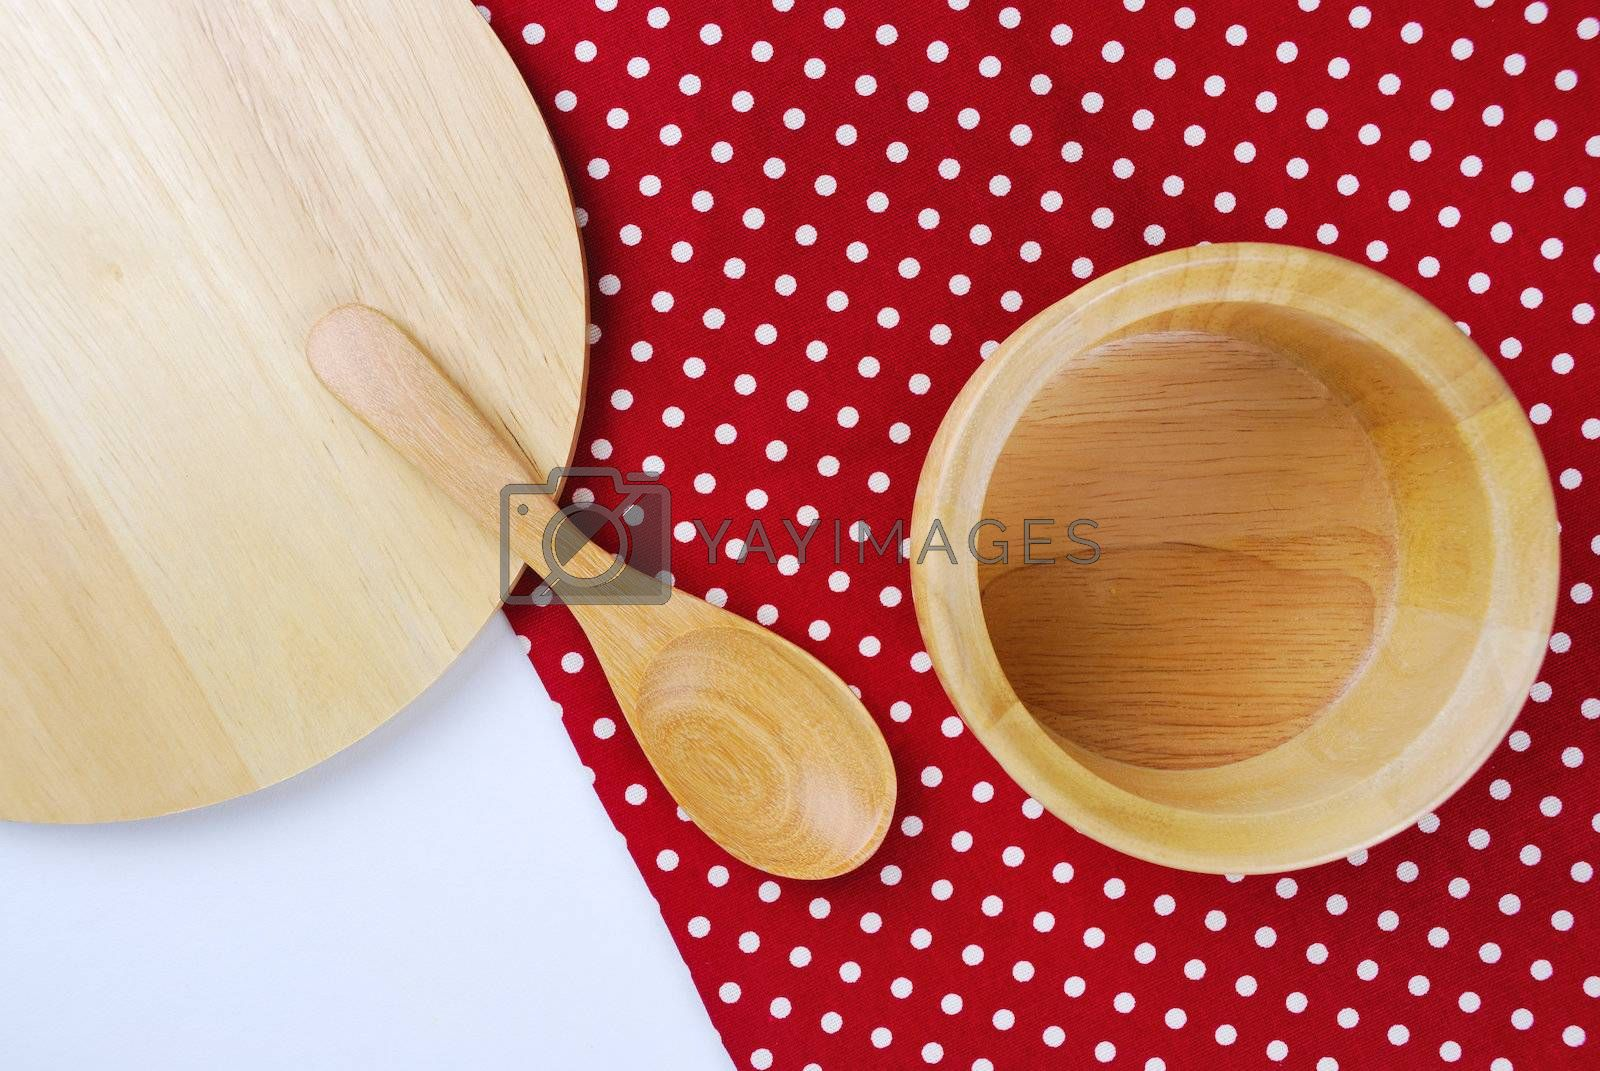 Royalty free image of Wooden bowl, tablecloth, spoon, fork on table background  by teen00000